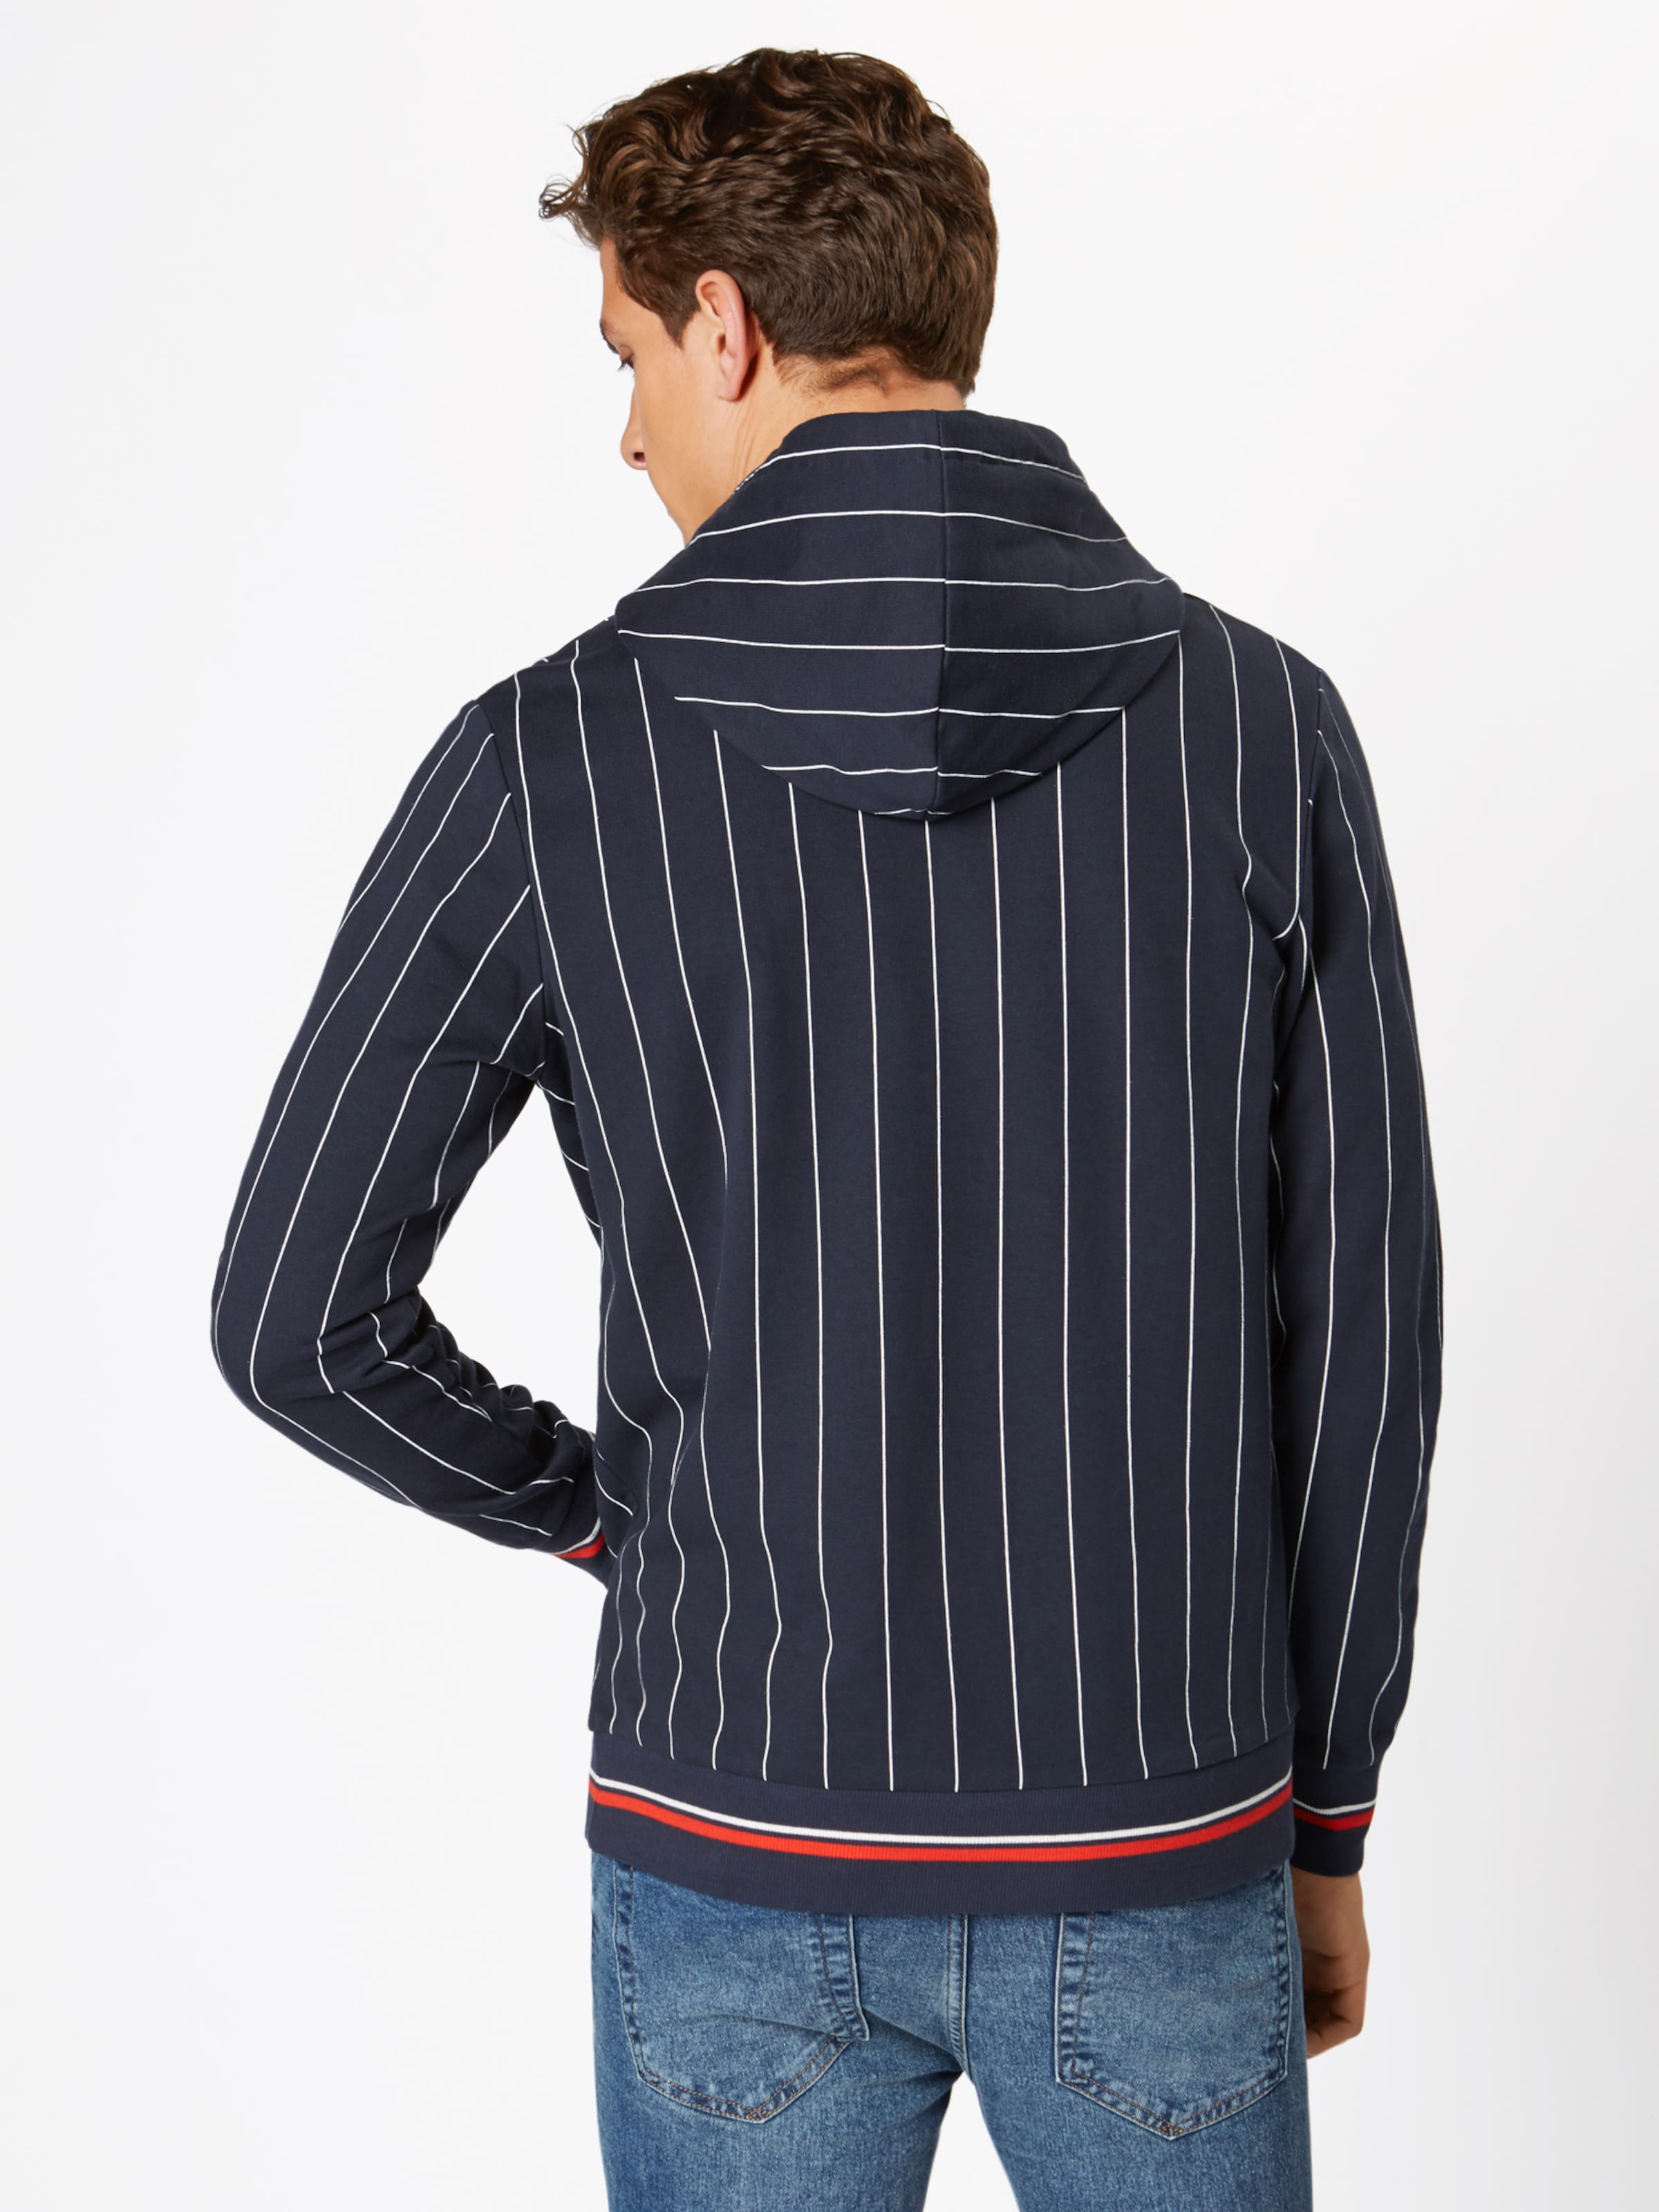 Jones 'pinstripe' Sweat Jackamp; En Bleu FoncéBlanc shirt XiuTPkZO